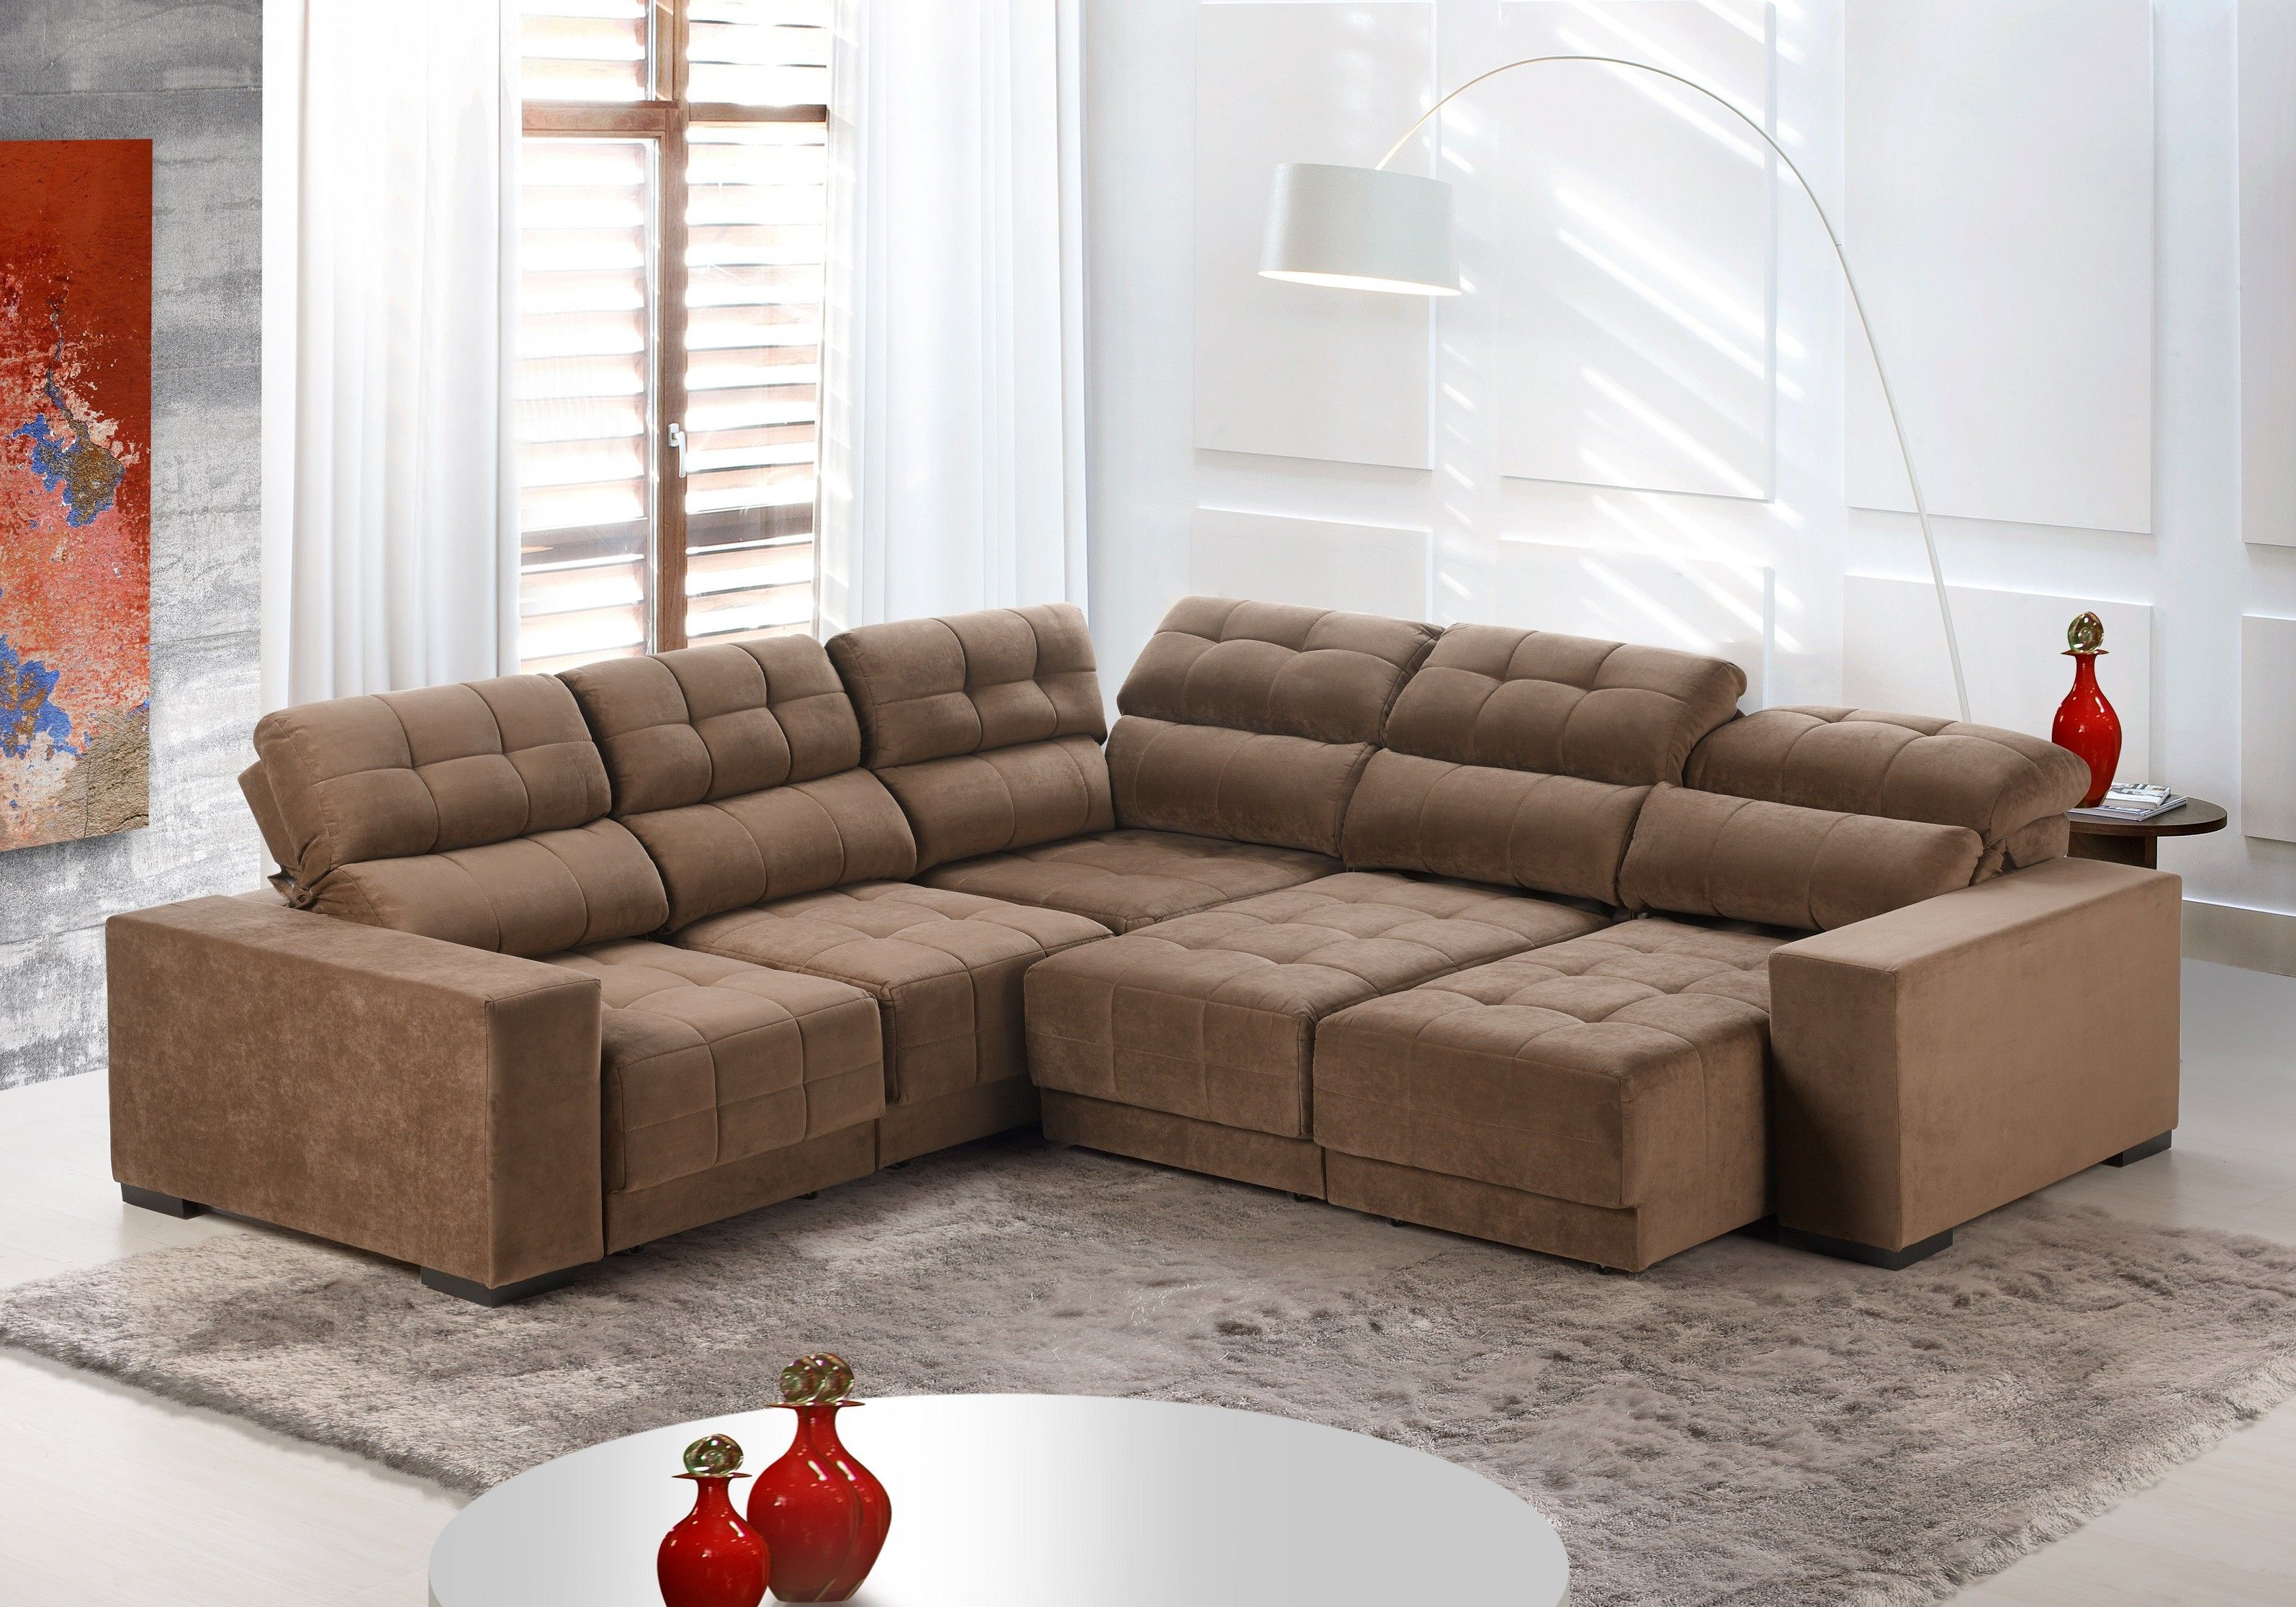 Sof de canto 6 lugares retr til e reclin vel essense for Sofa 03 lugares retratil e reclinavel